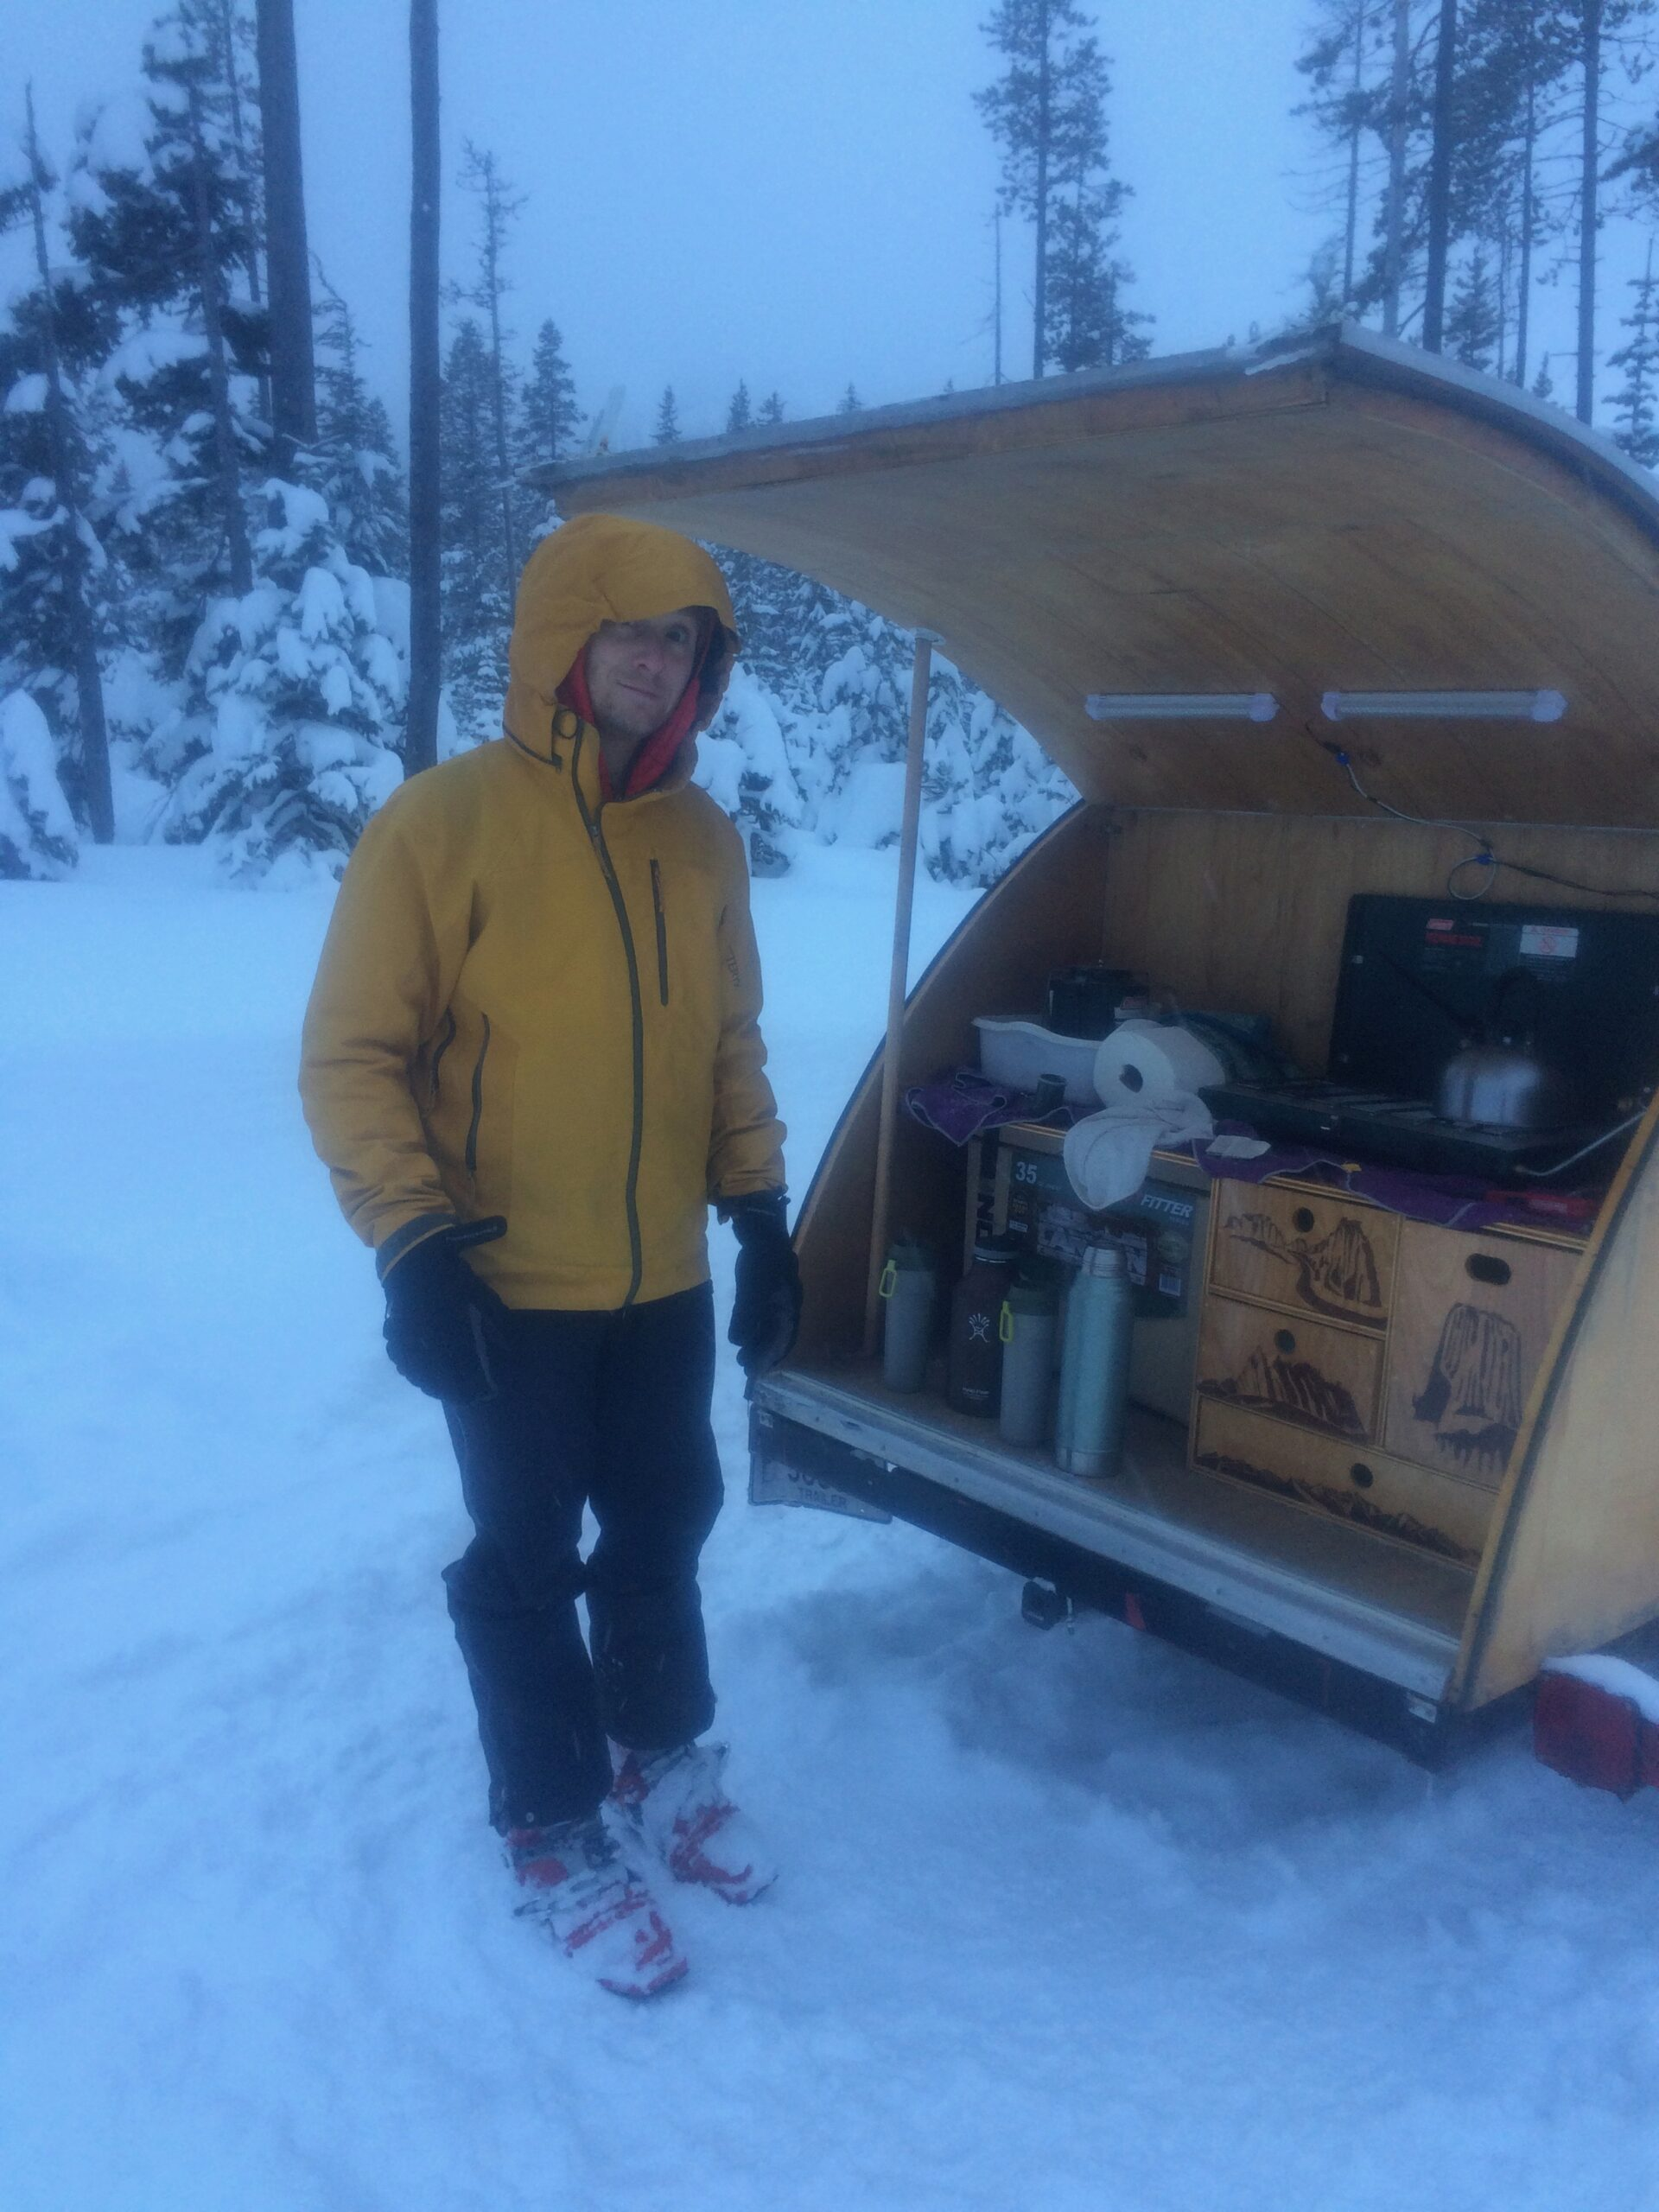 Jayson winter camping with a tear drop trailer.